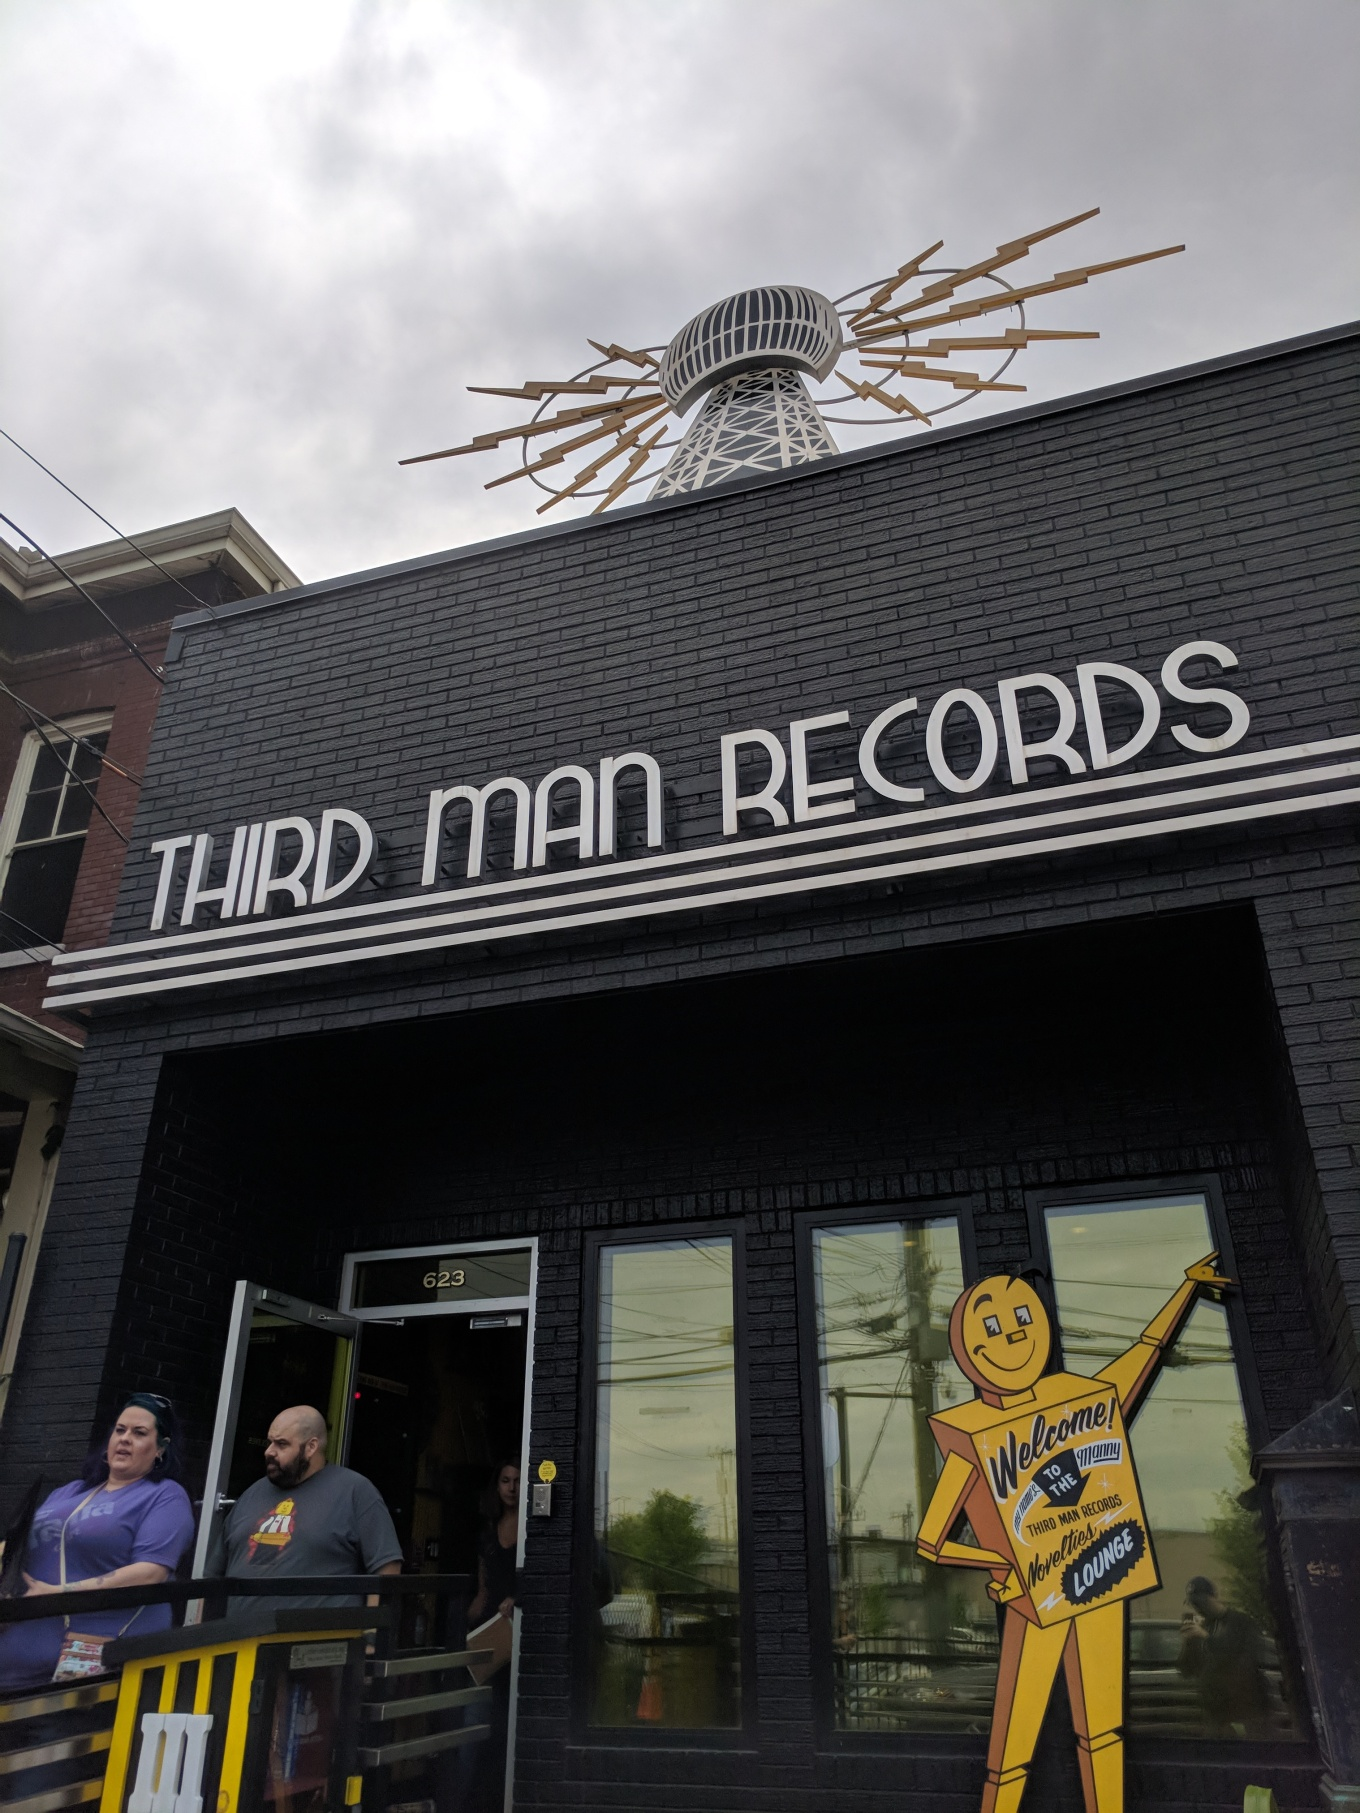 Third Man Records Exterior Nashville CBC